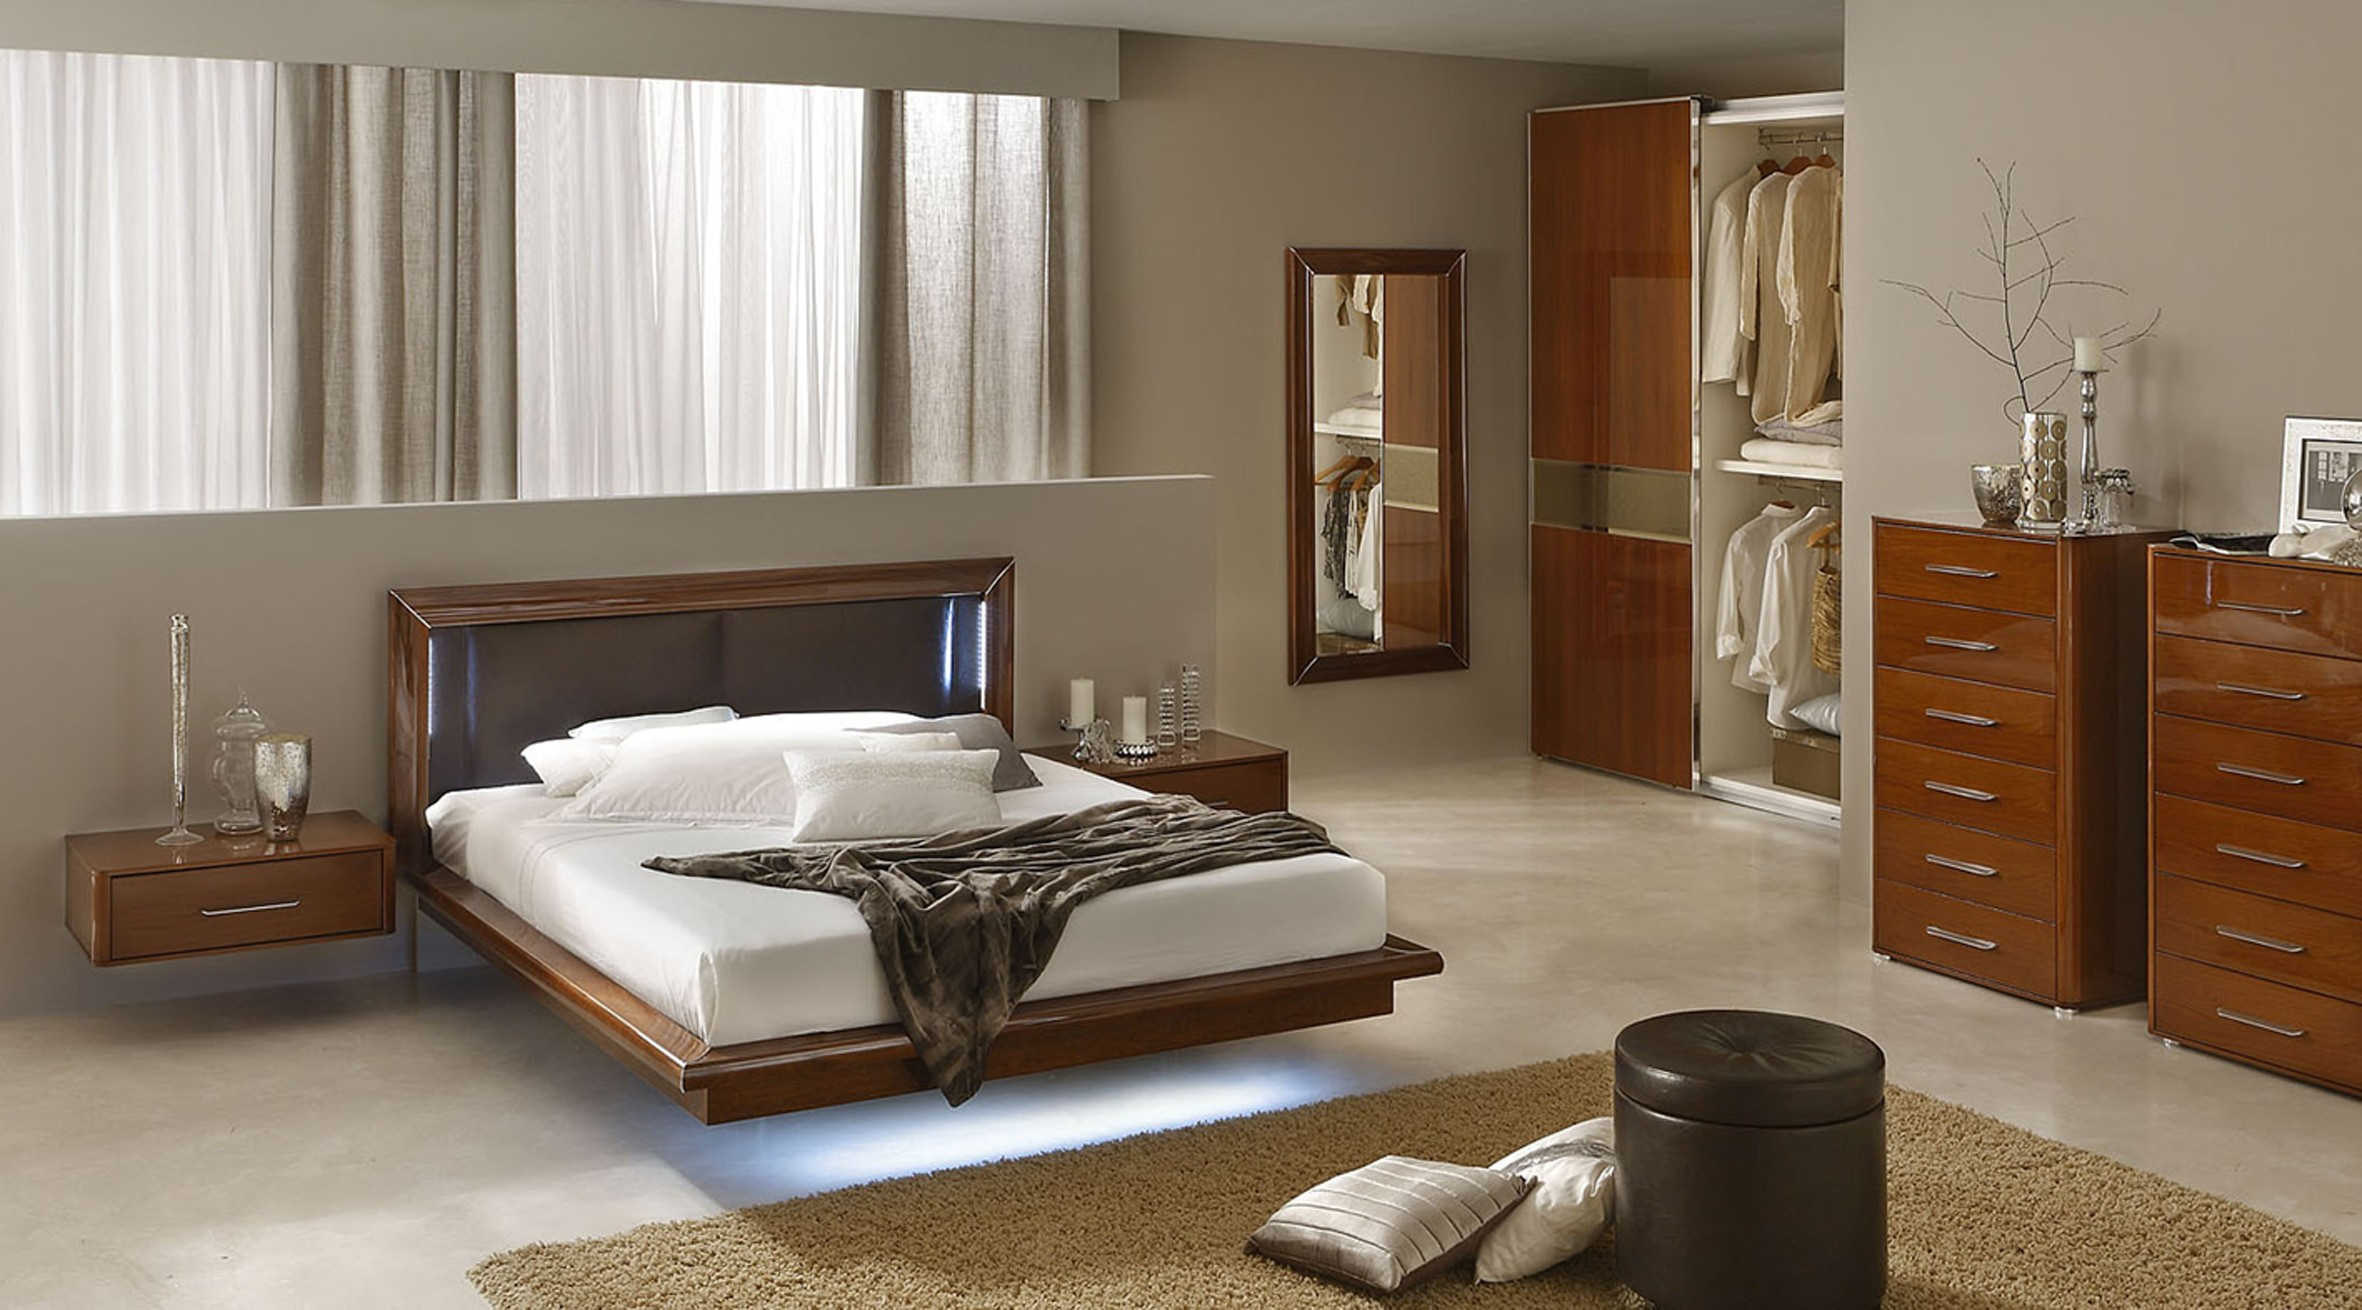 Sky modern italian bedroom set n contemporary for Italian bedroom furniture